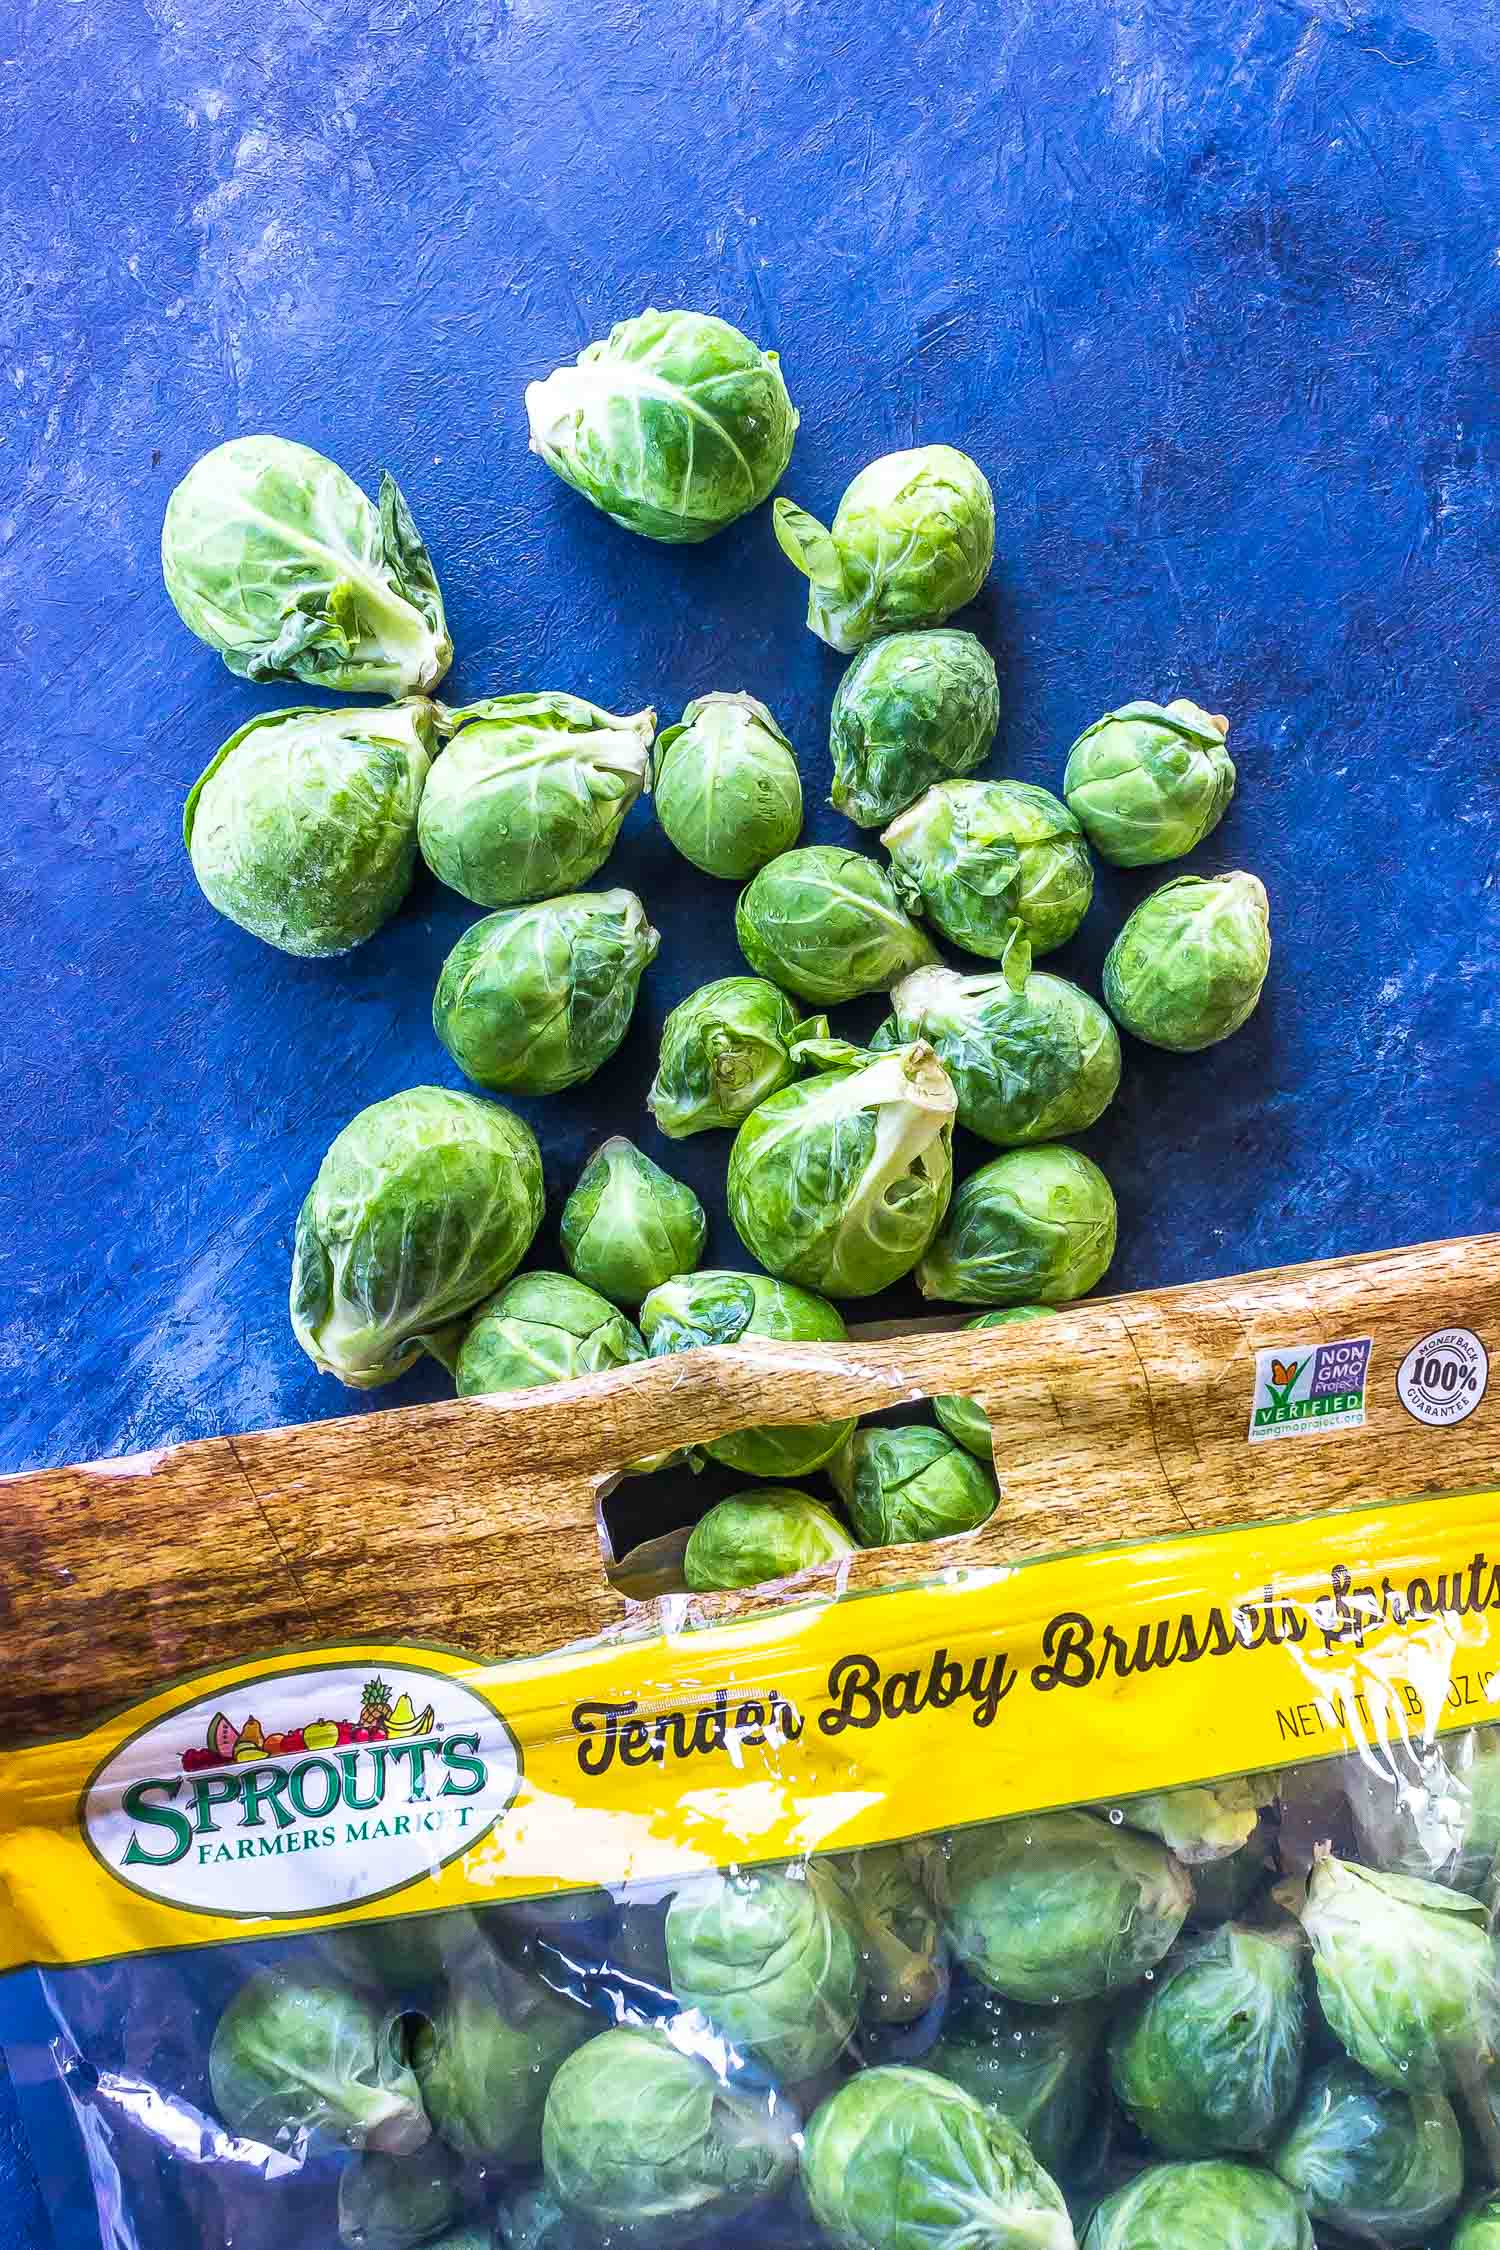 Brussels Sprouts Spilling out of produce bag from Sprouts Farmers market